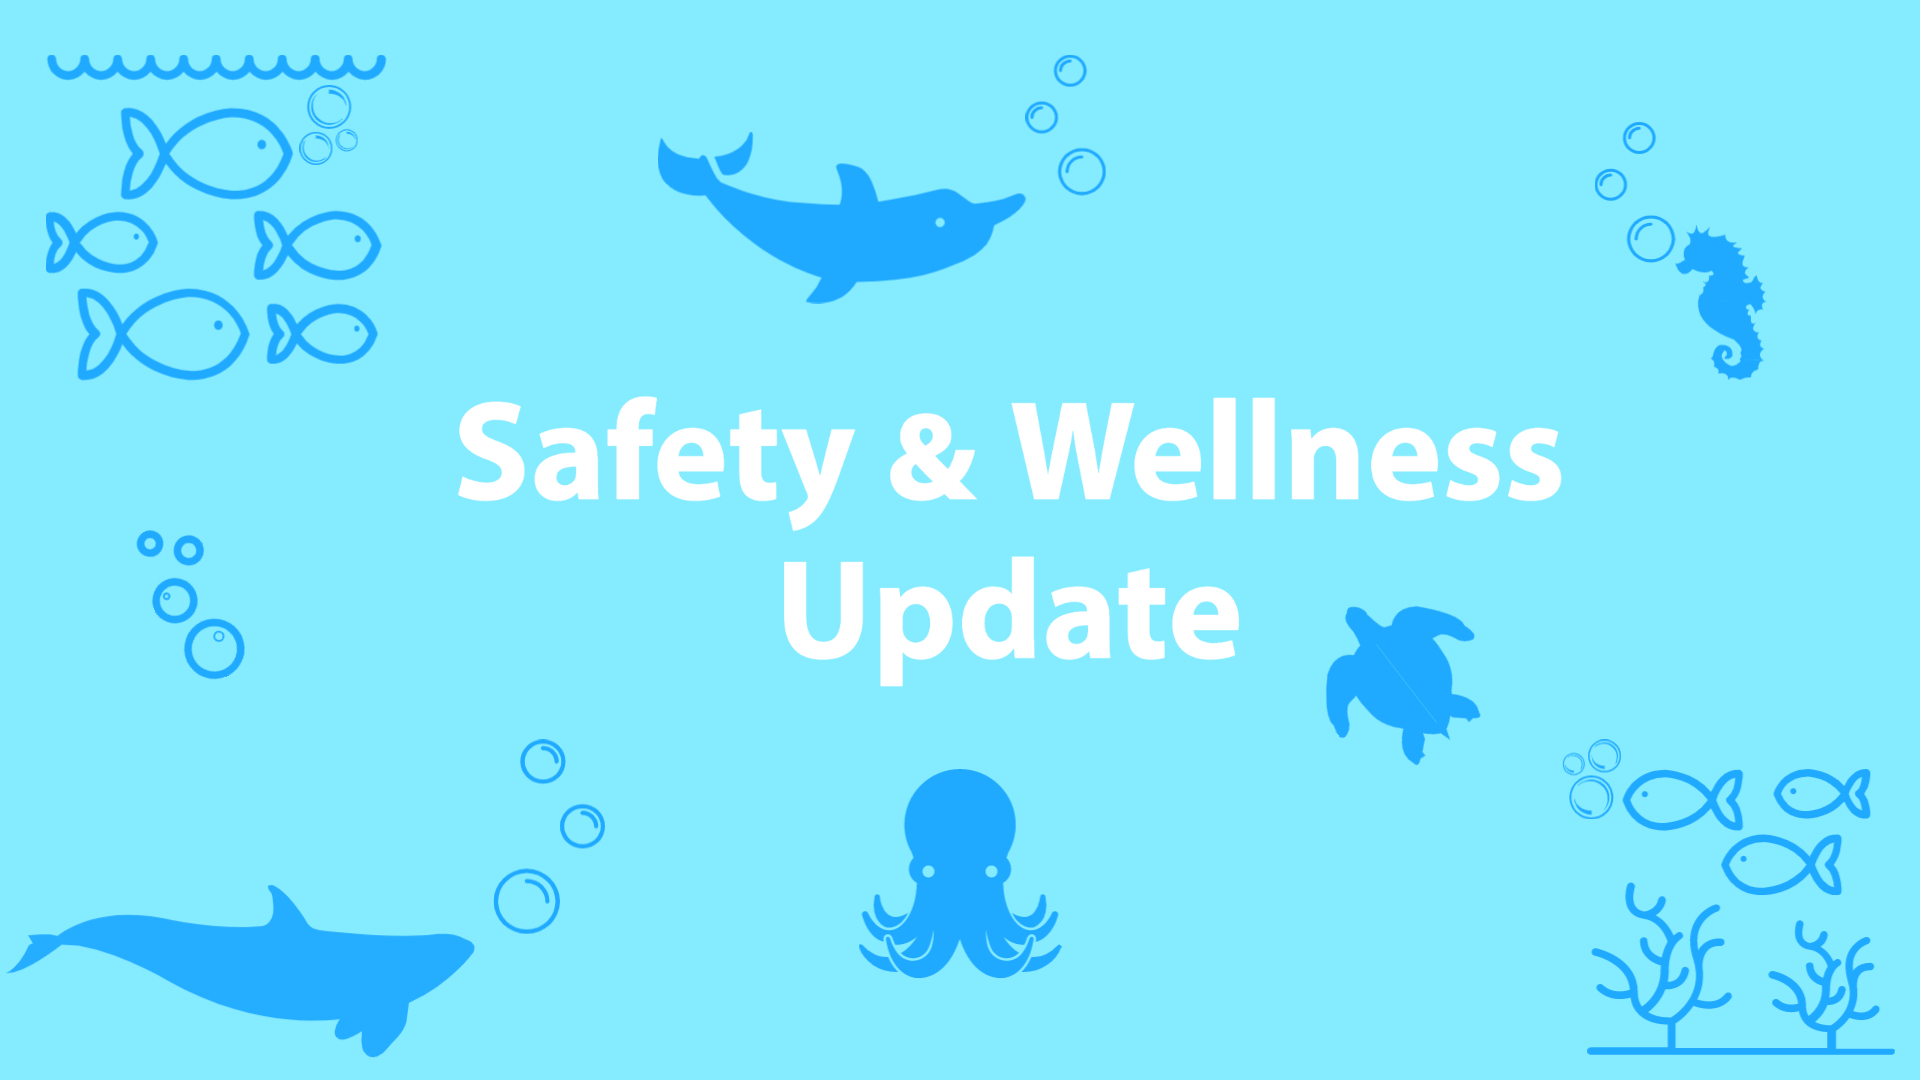 Safety & Wellness Update